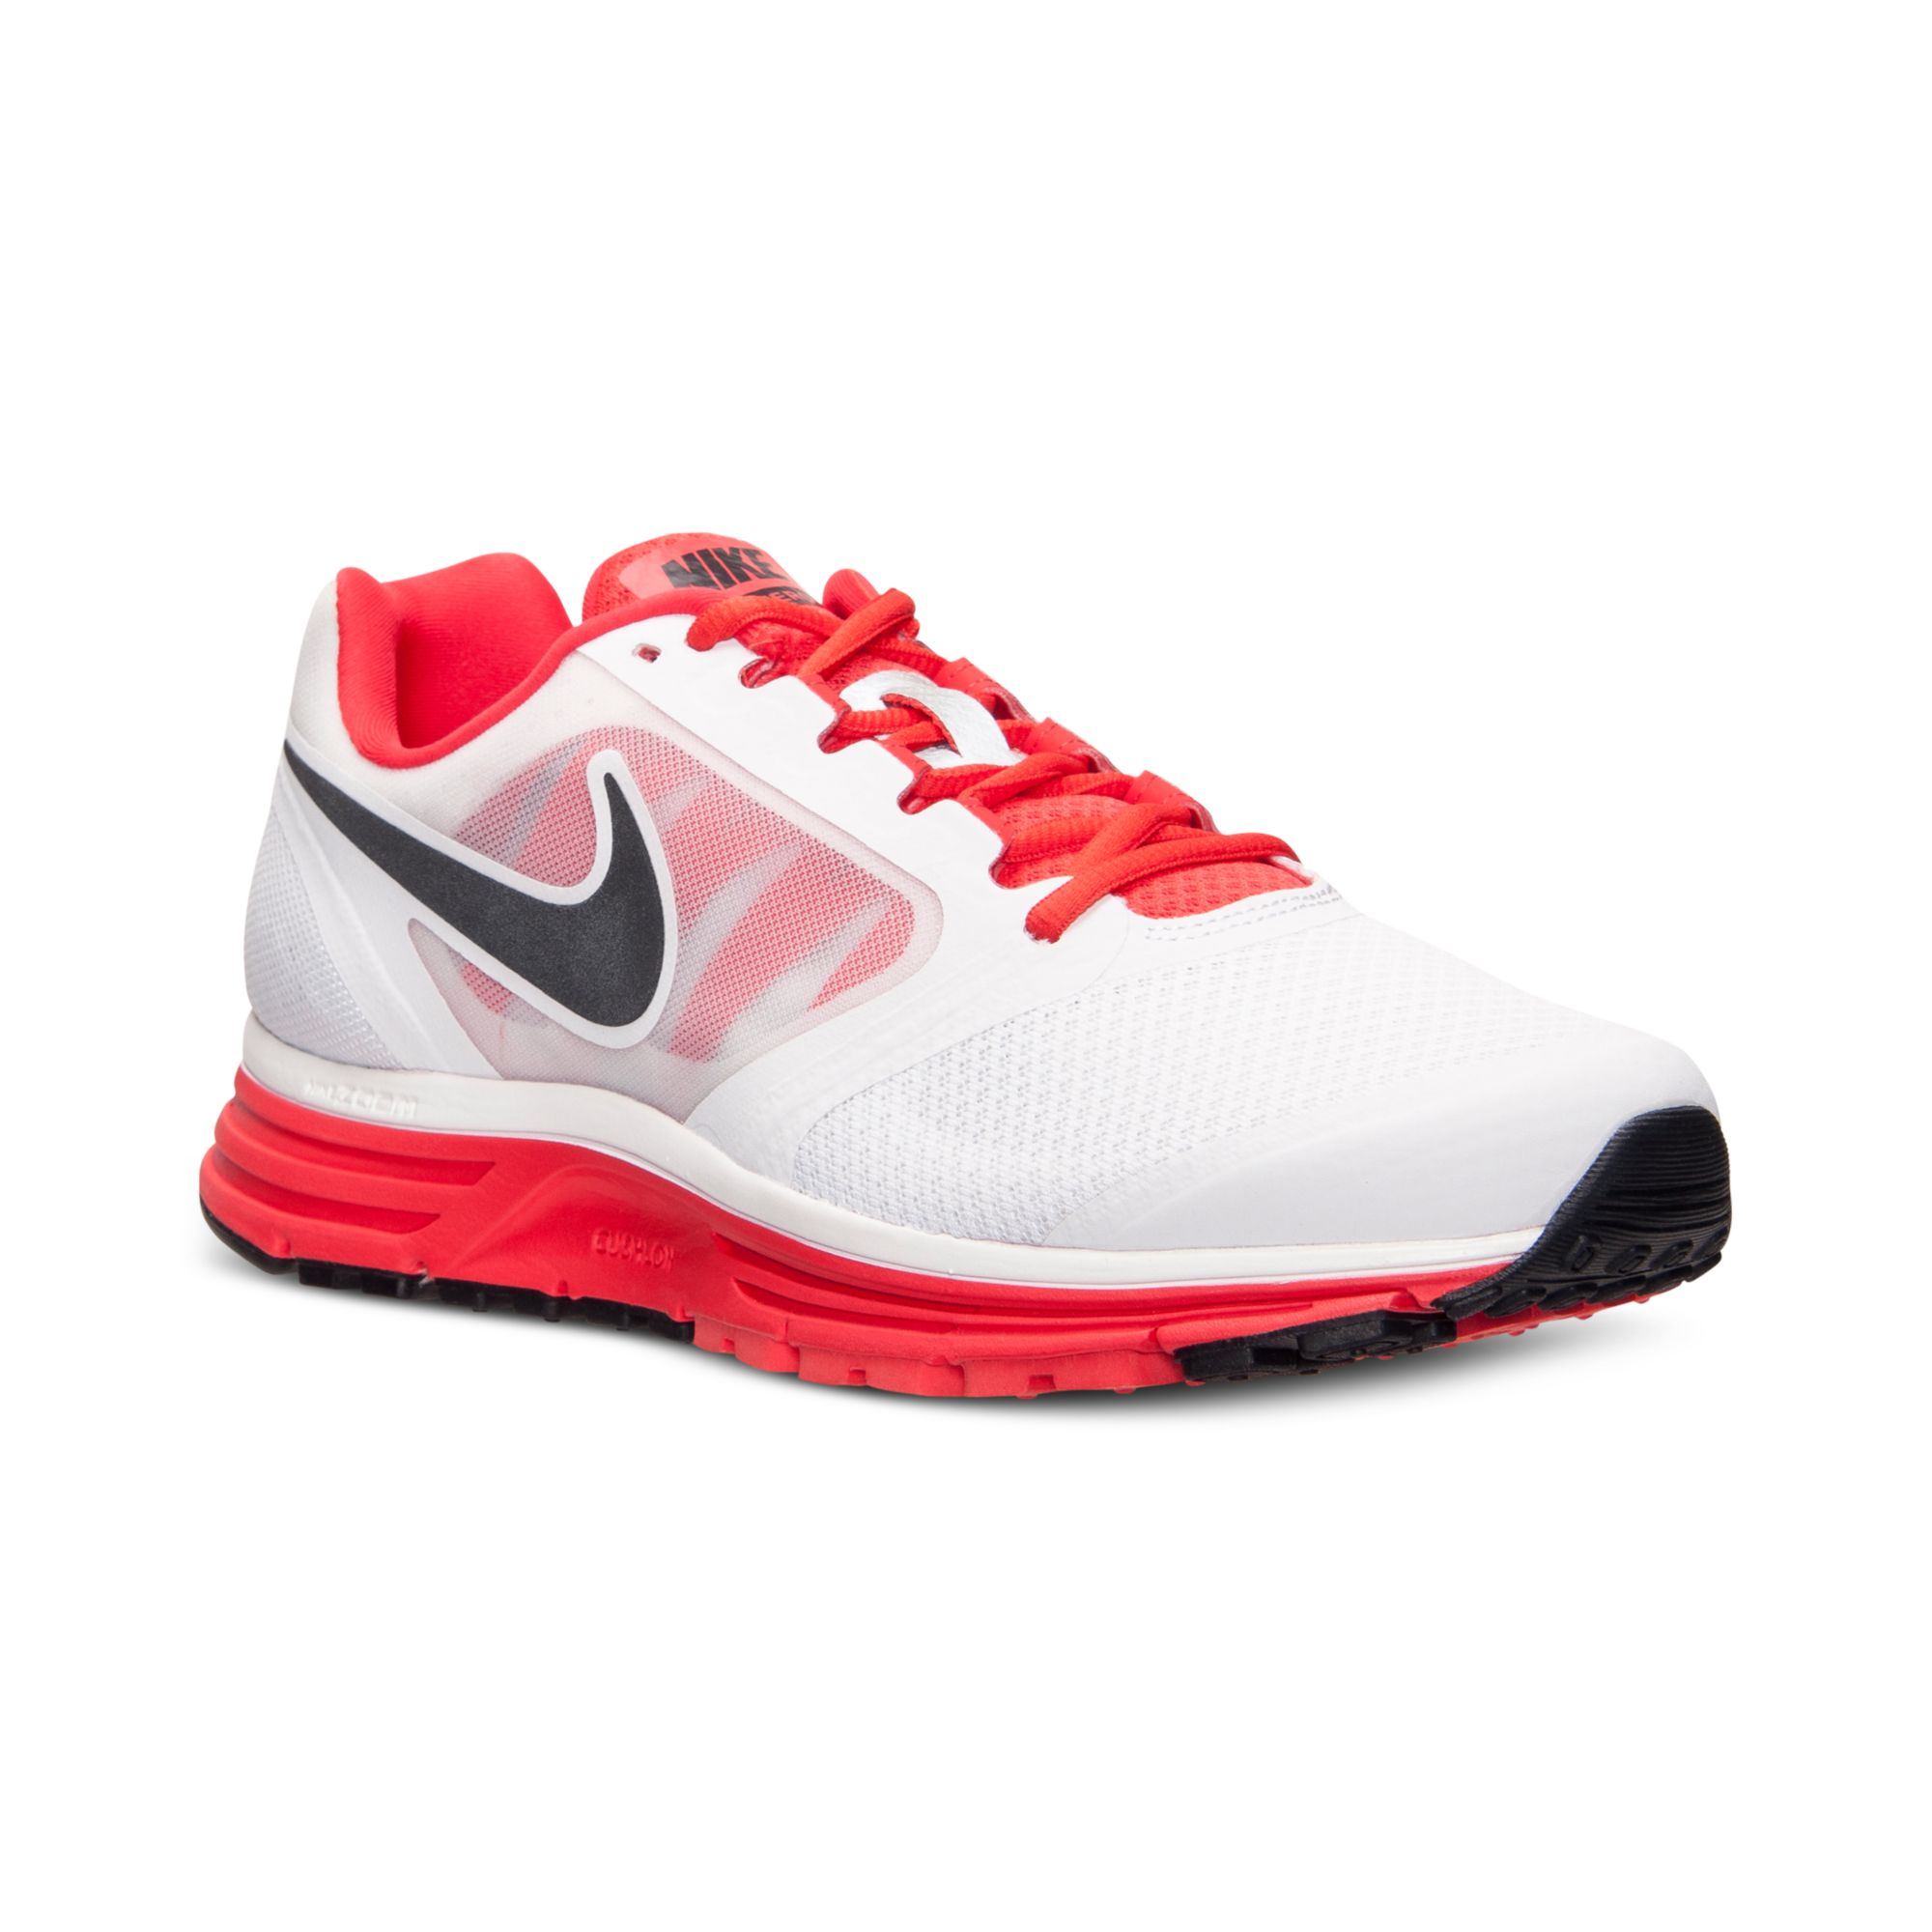 959c8e42fc5 ... official store lyst nike mens zoom vomero 8 running sneakers from  finish line in 8b8f7 b6aa9